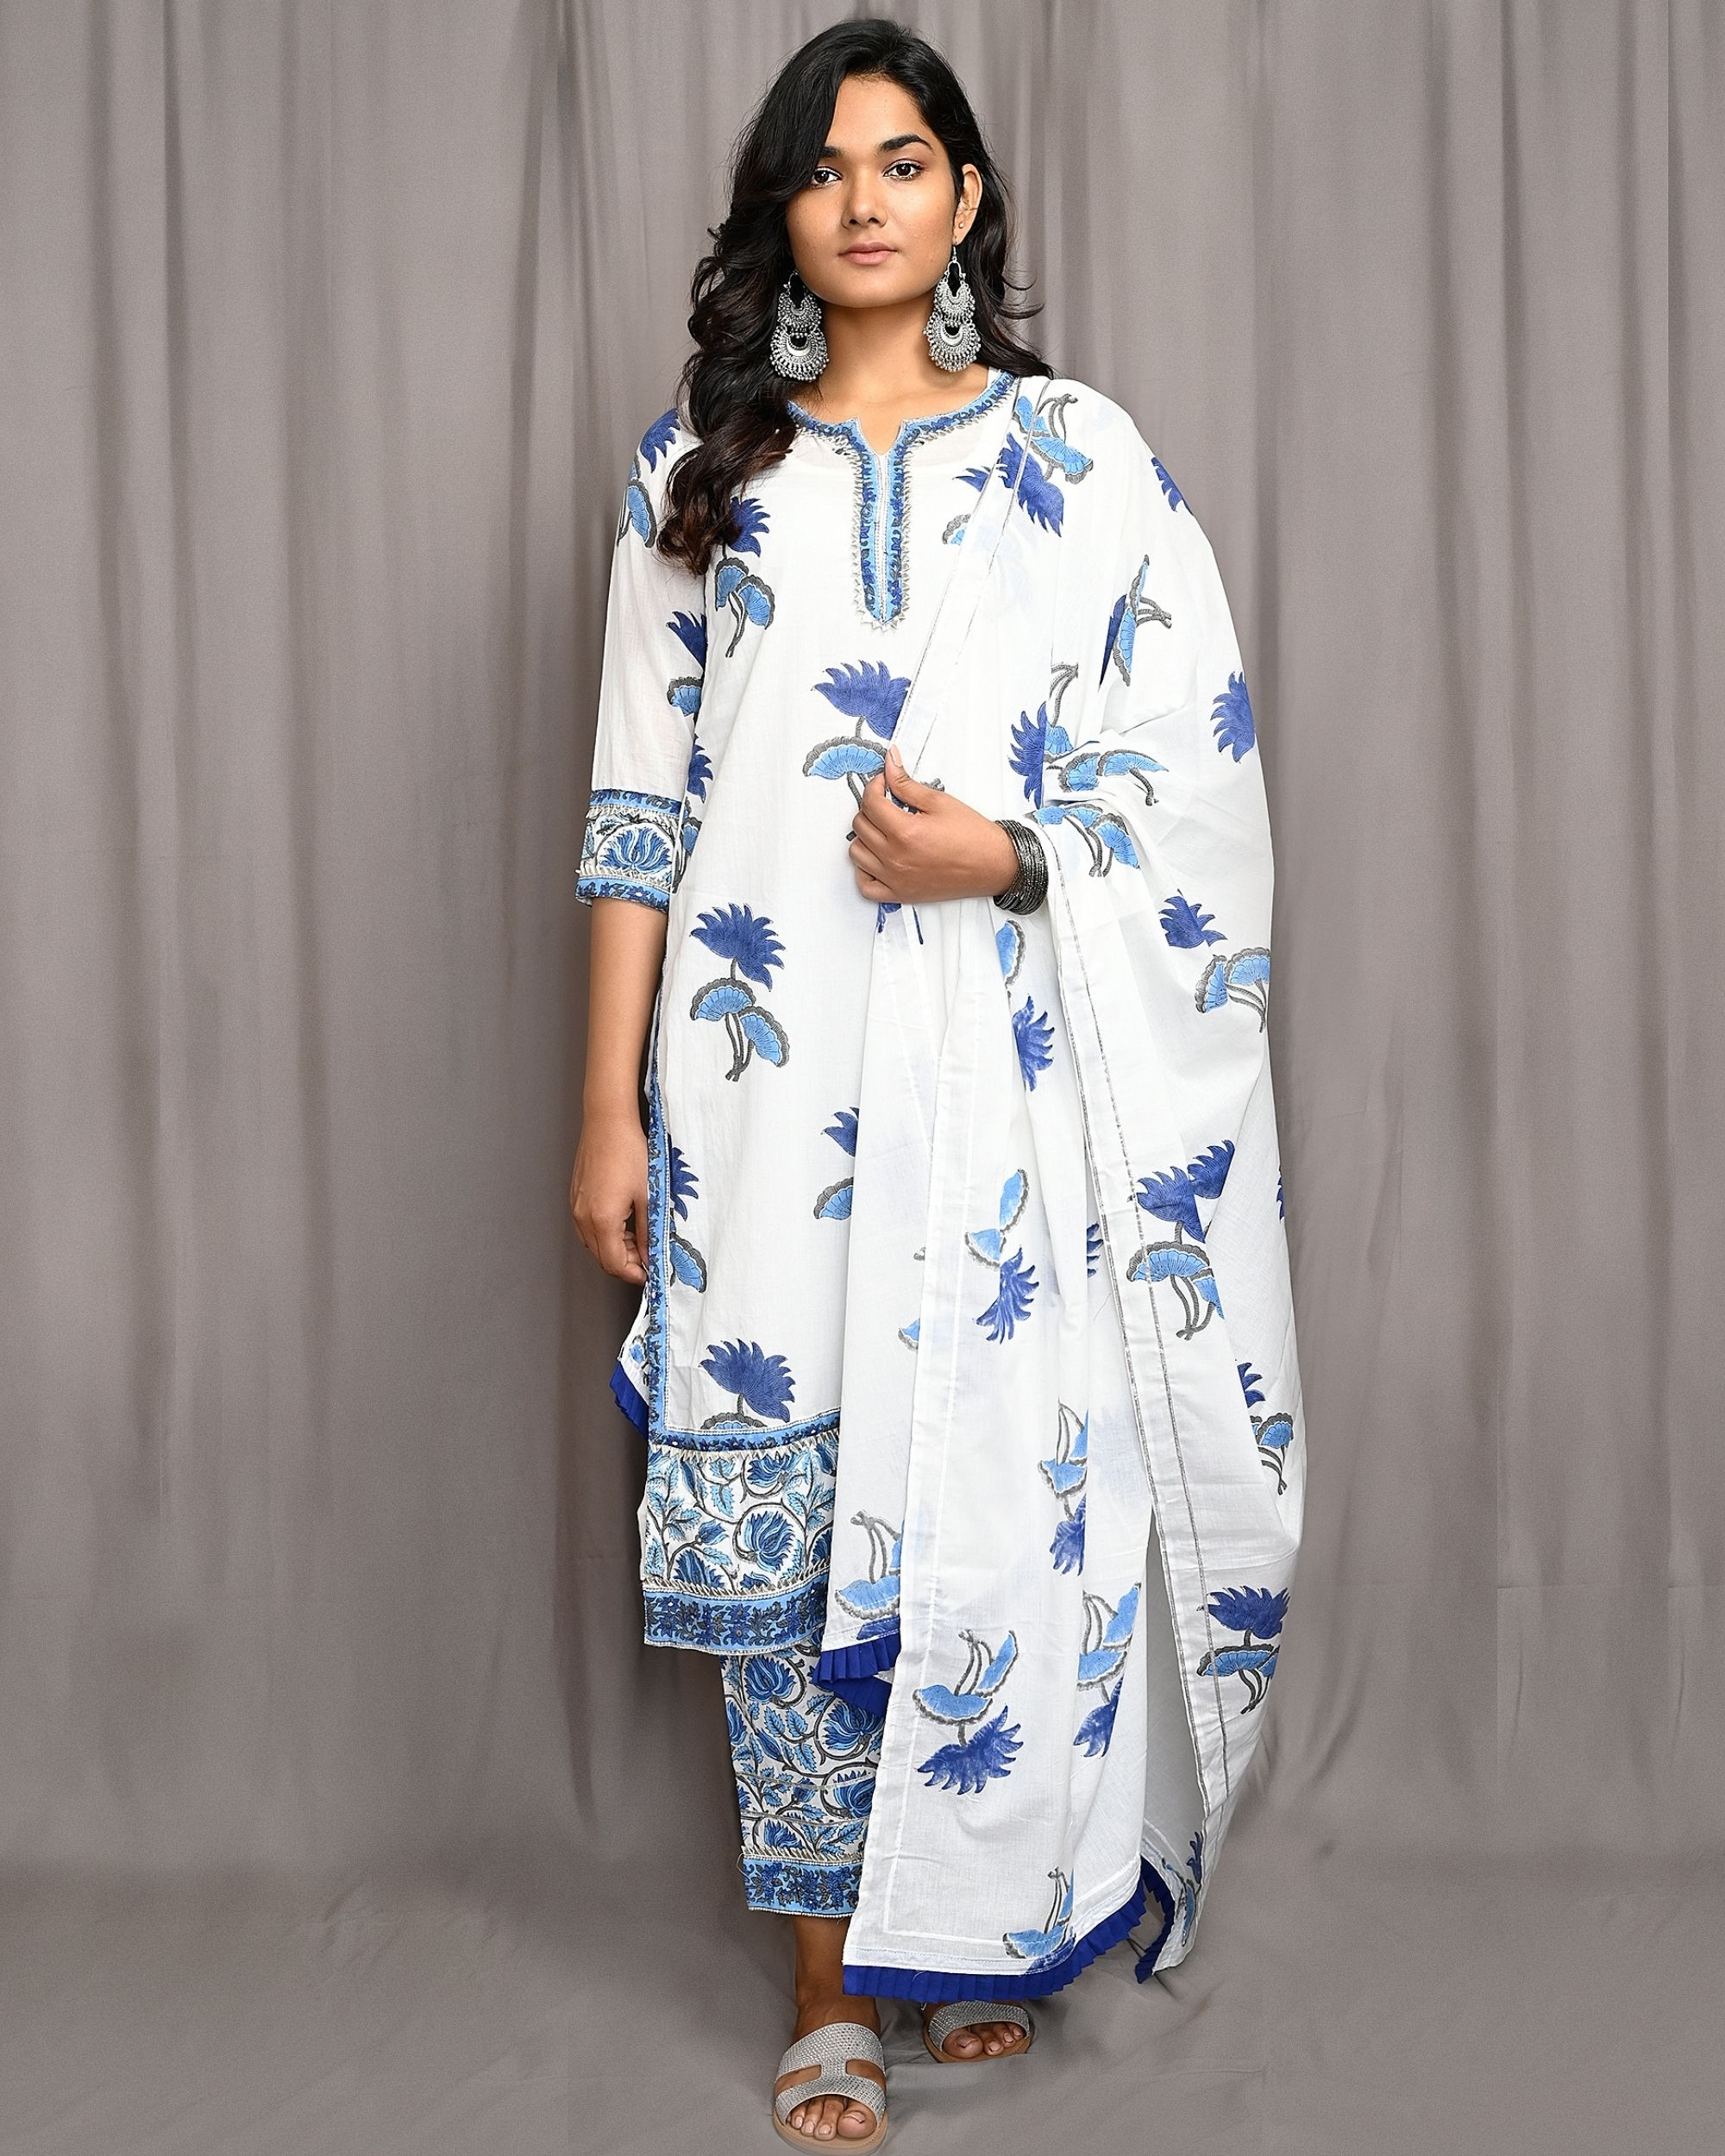 White and blue floral hand block printed dupatta